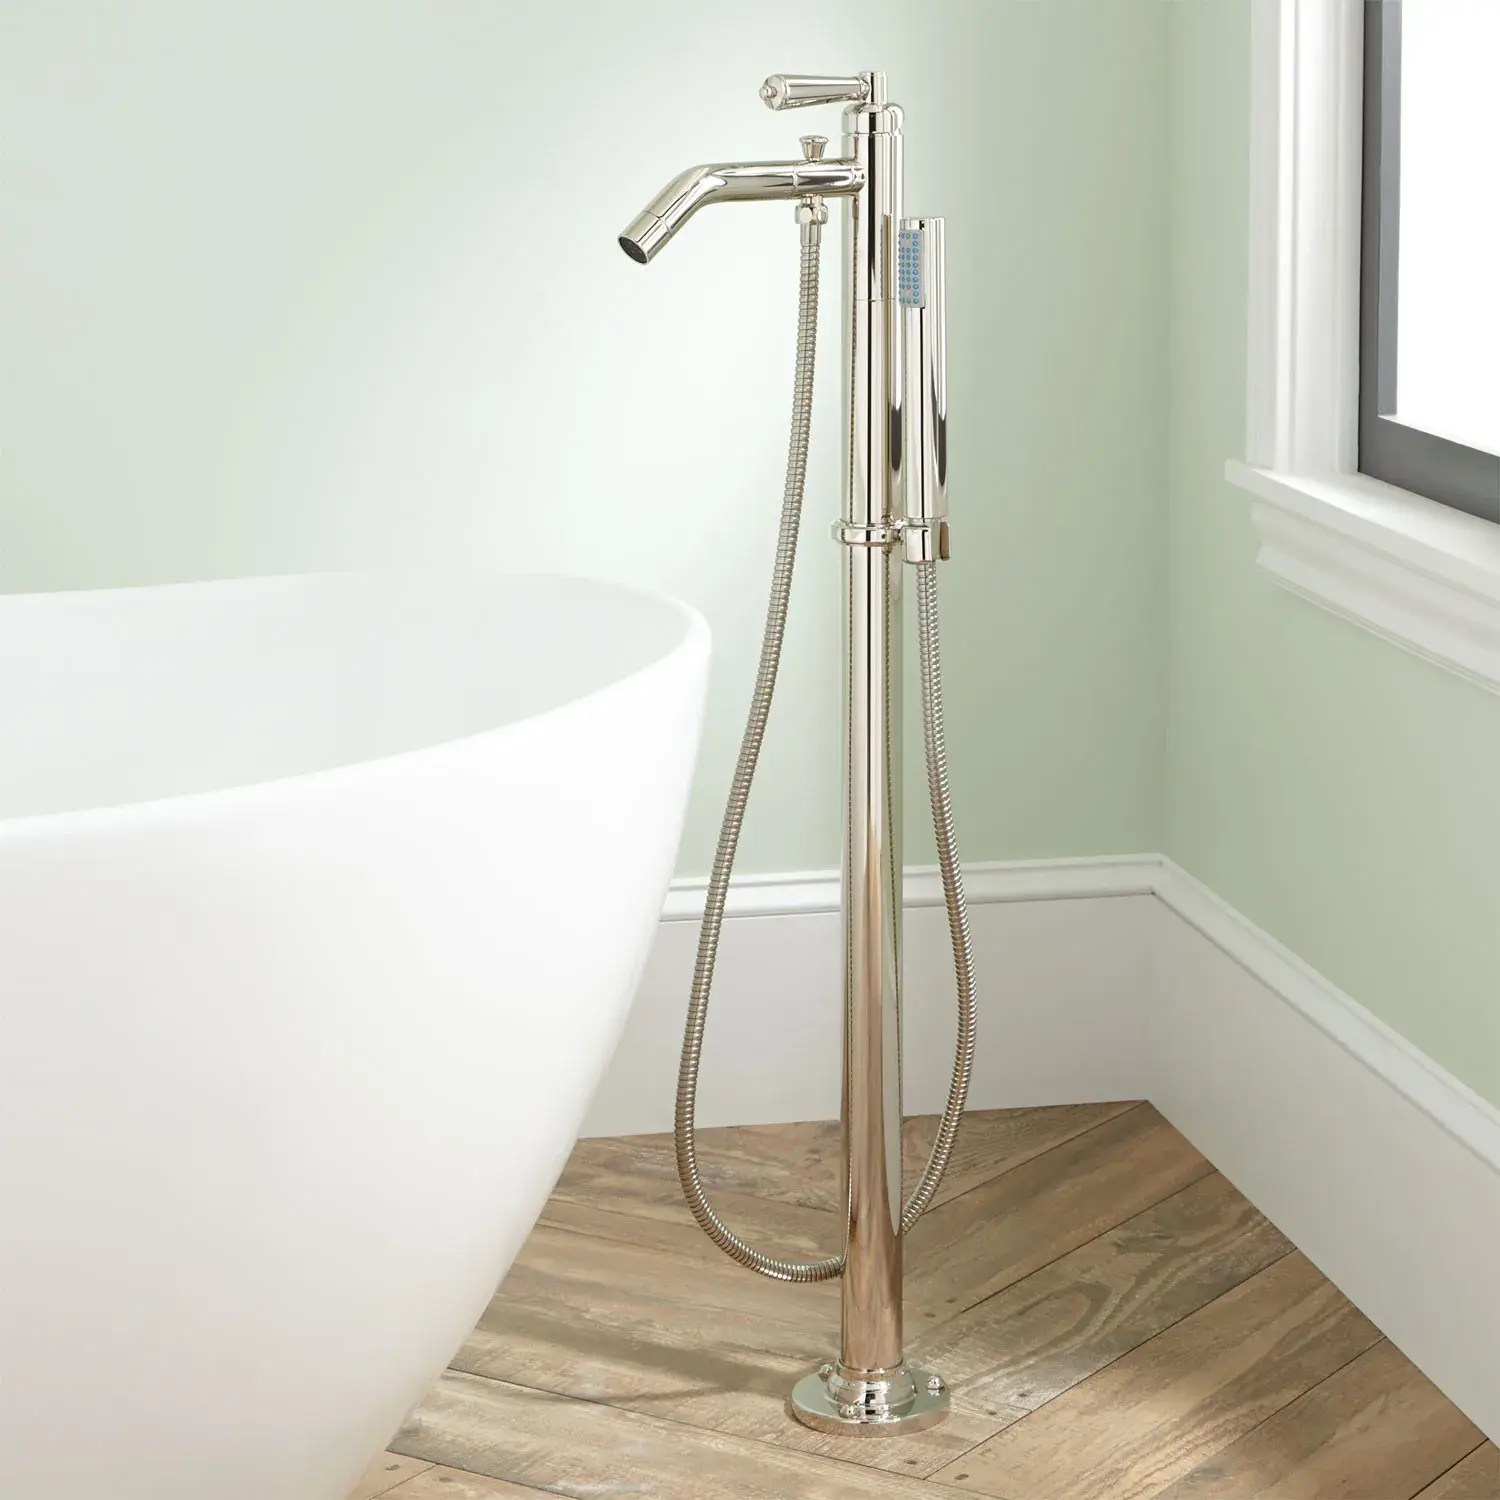 napier freestanding tub faucet and hand shower